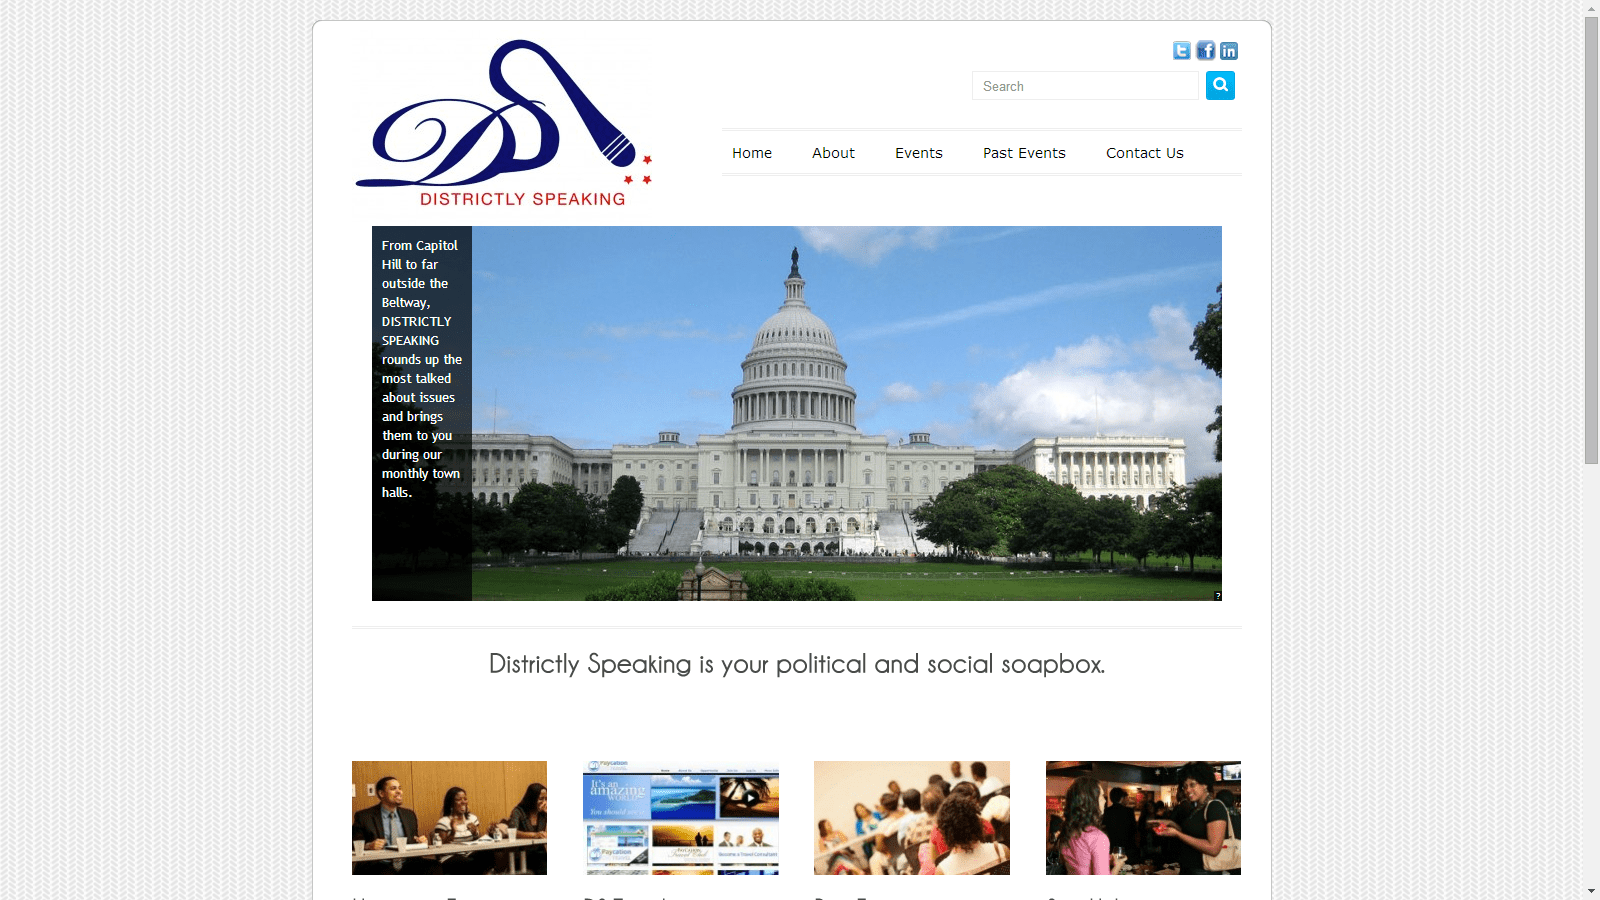 Districtly Speaking Original Site